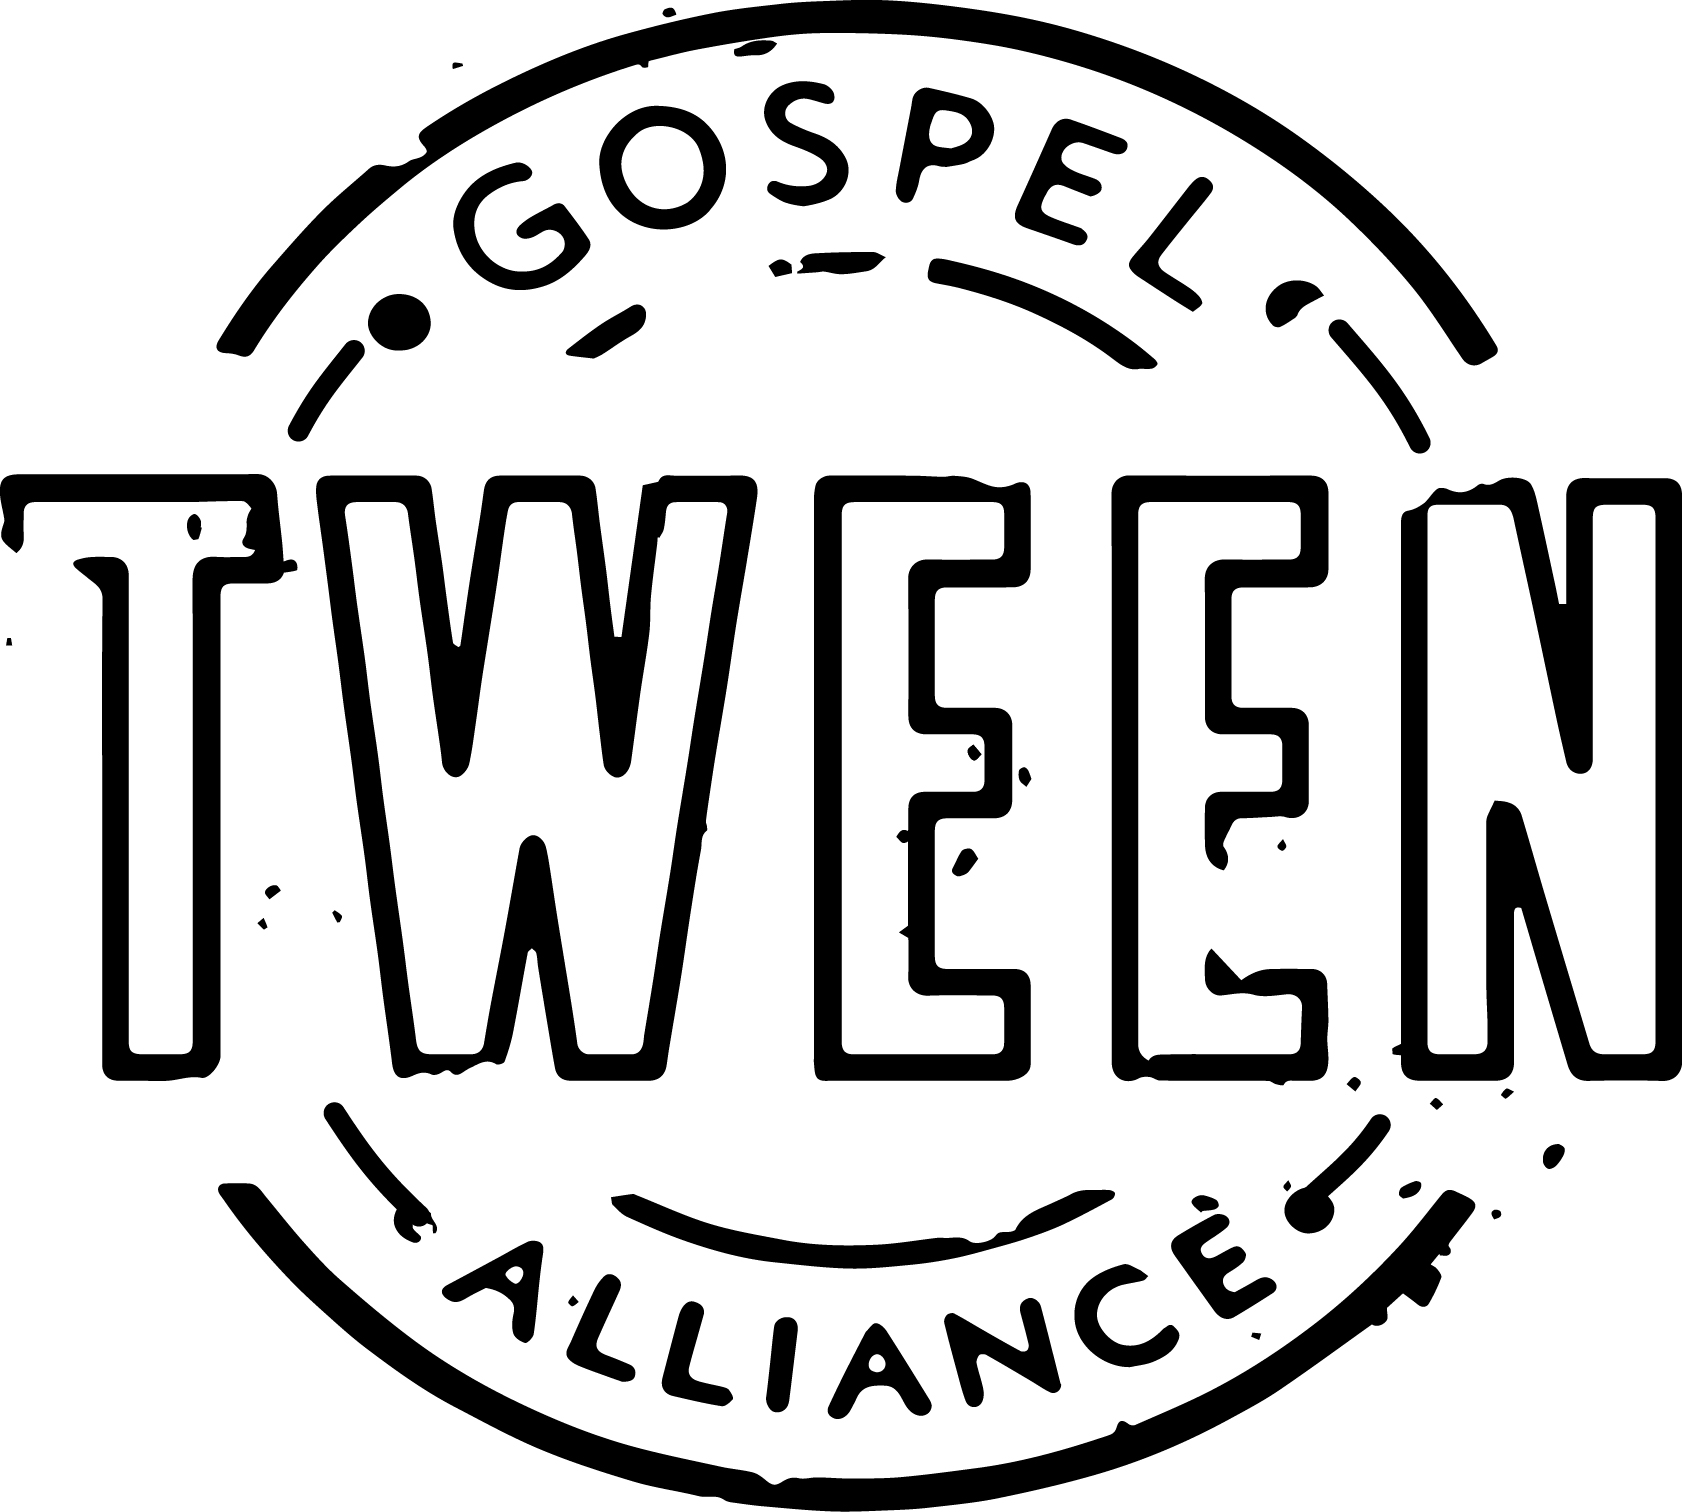 TweenGospelAllianceFinal